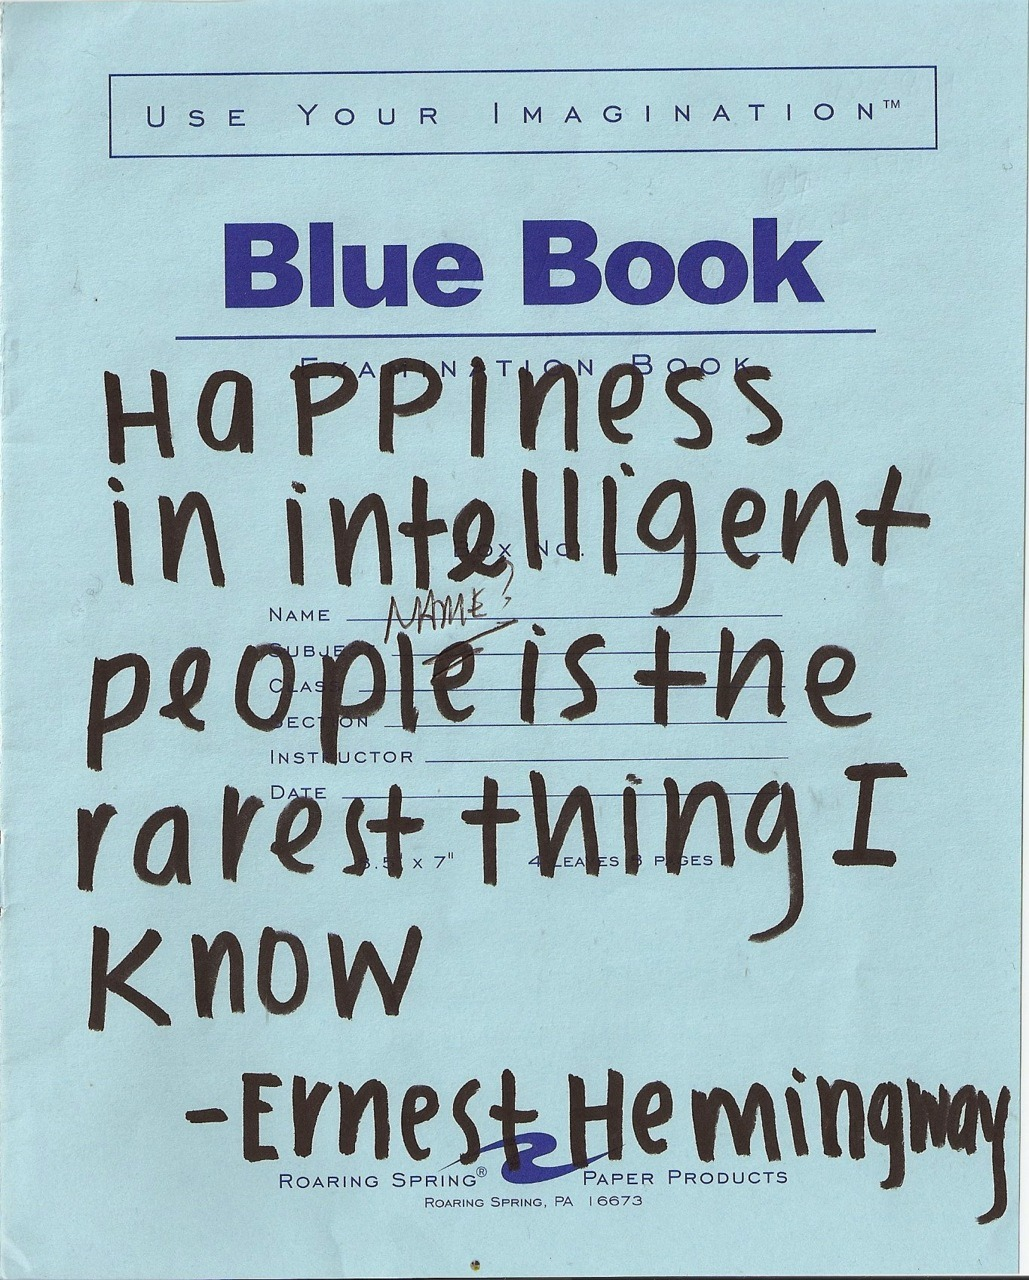 Does Hemingway speak the truth?  If so, his words may explain my eternal state of longing.